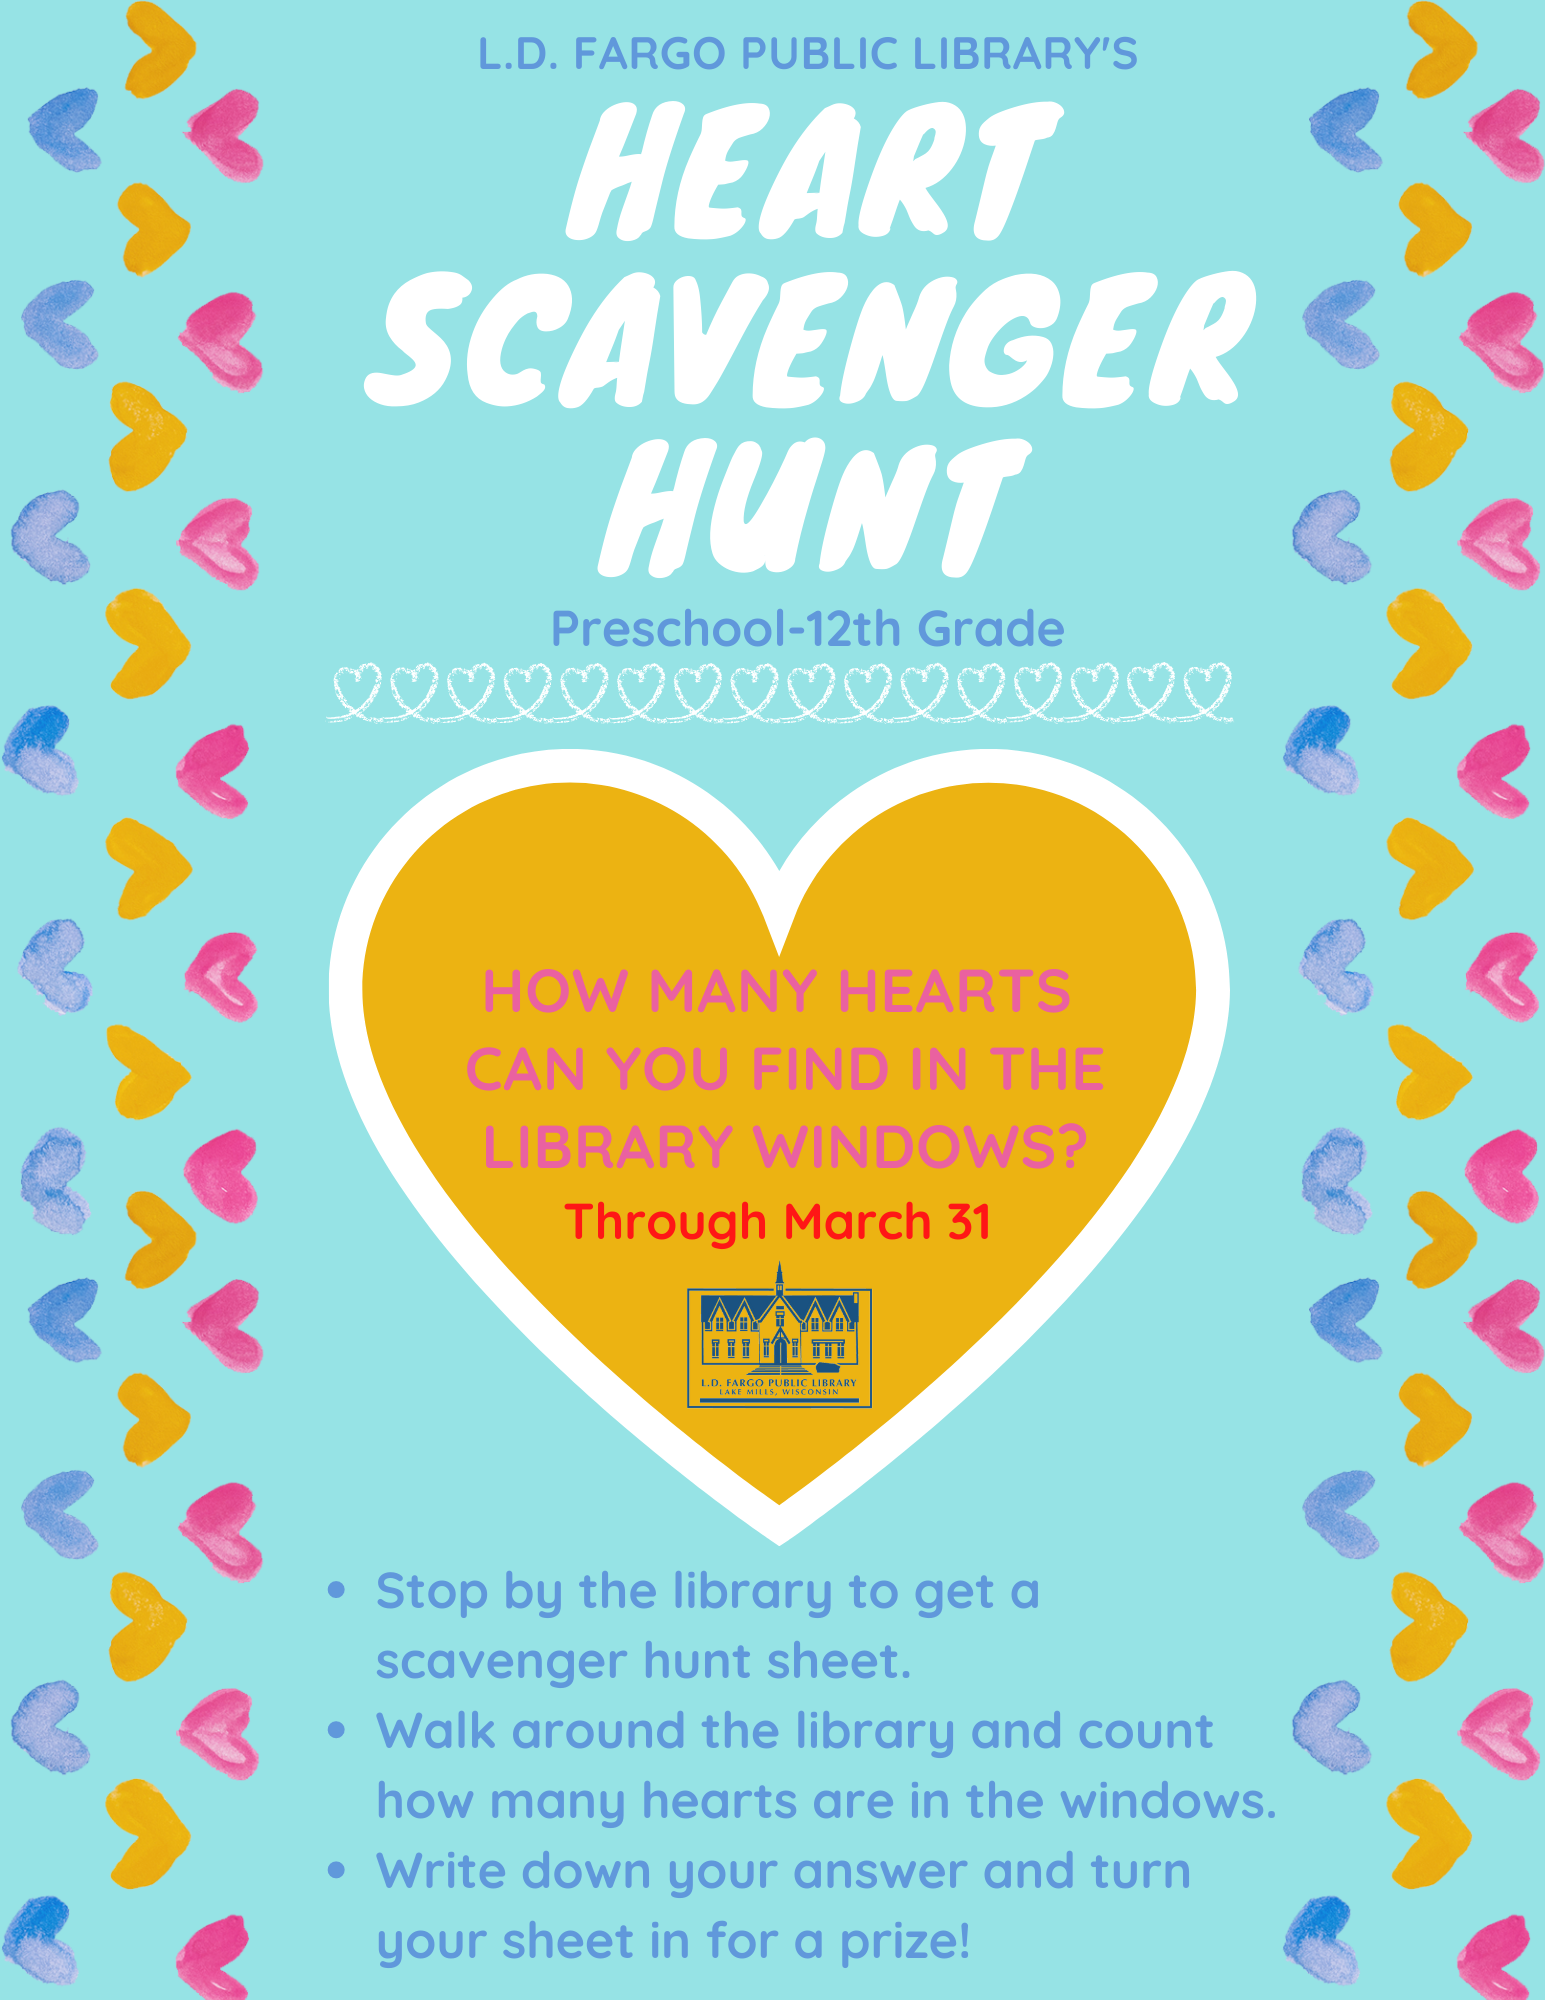 Heart Scavenger Hunt! Stop by the library to get a scavenger hunt sheet. Walk around the library and count how many hearts are in the windows.   Write down your answer and turn your sheet in for a prize!  Through March 31